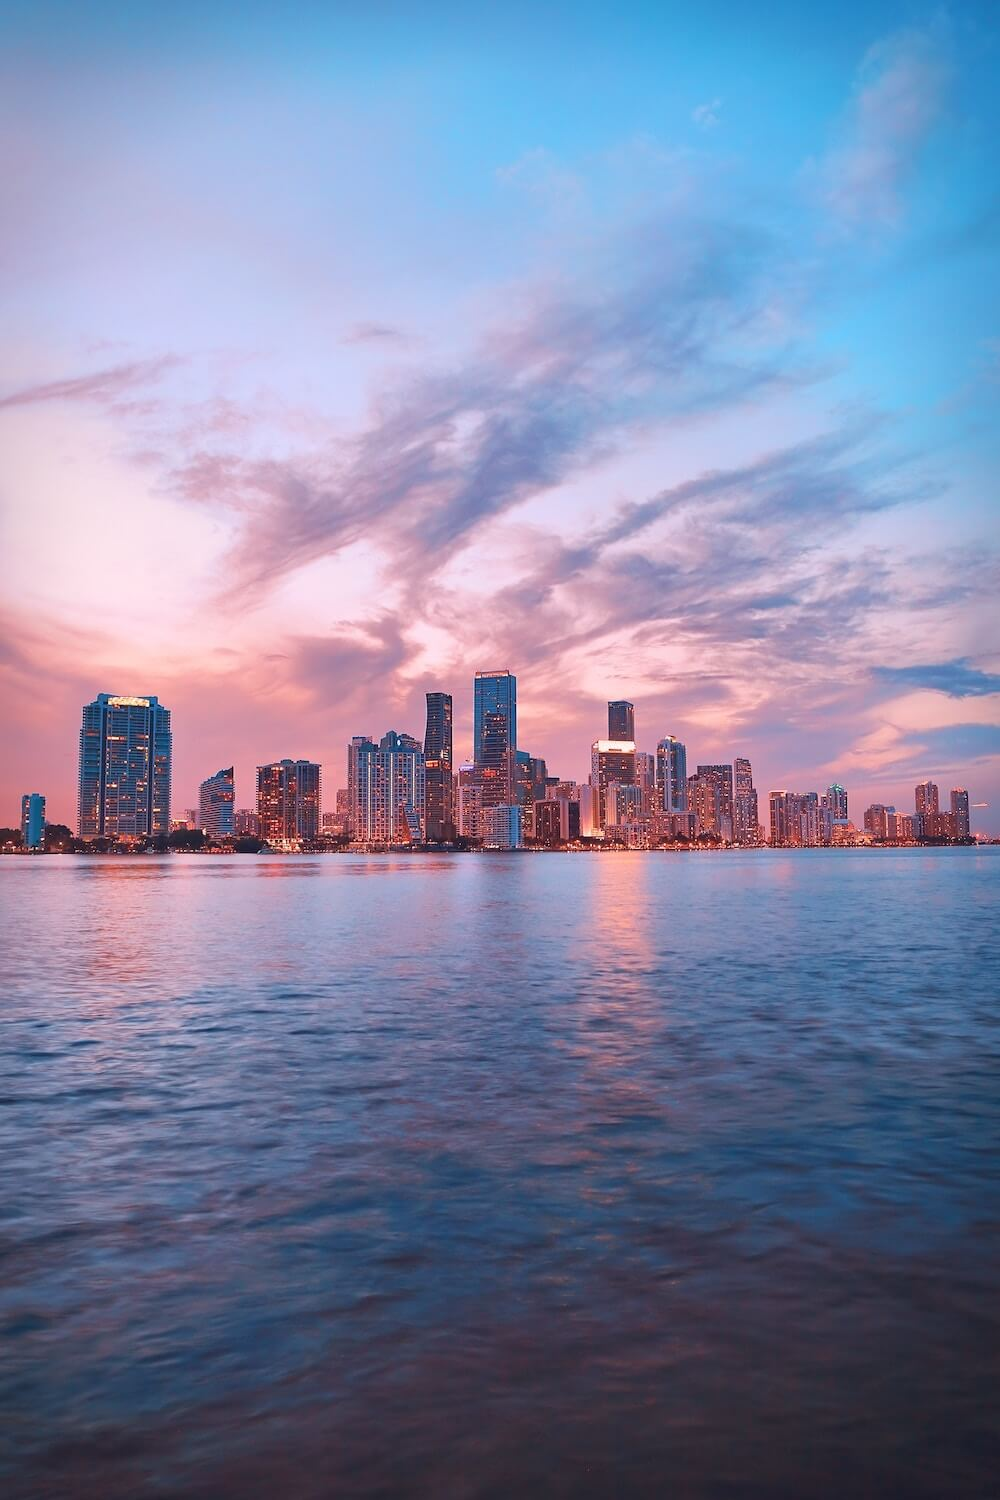 52 Coolest Things to Do in Miami: Your Quick List